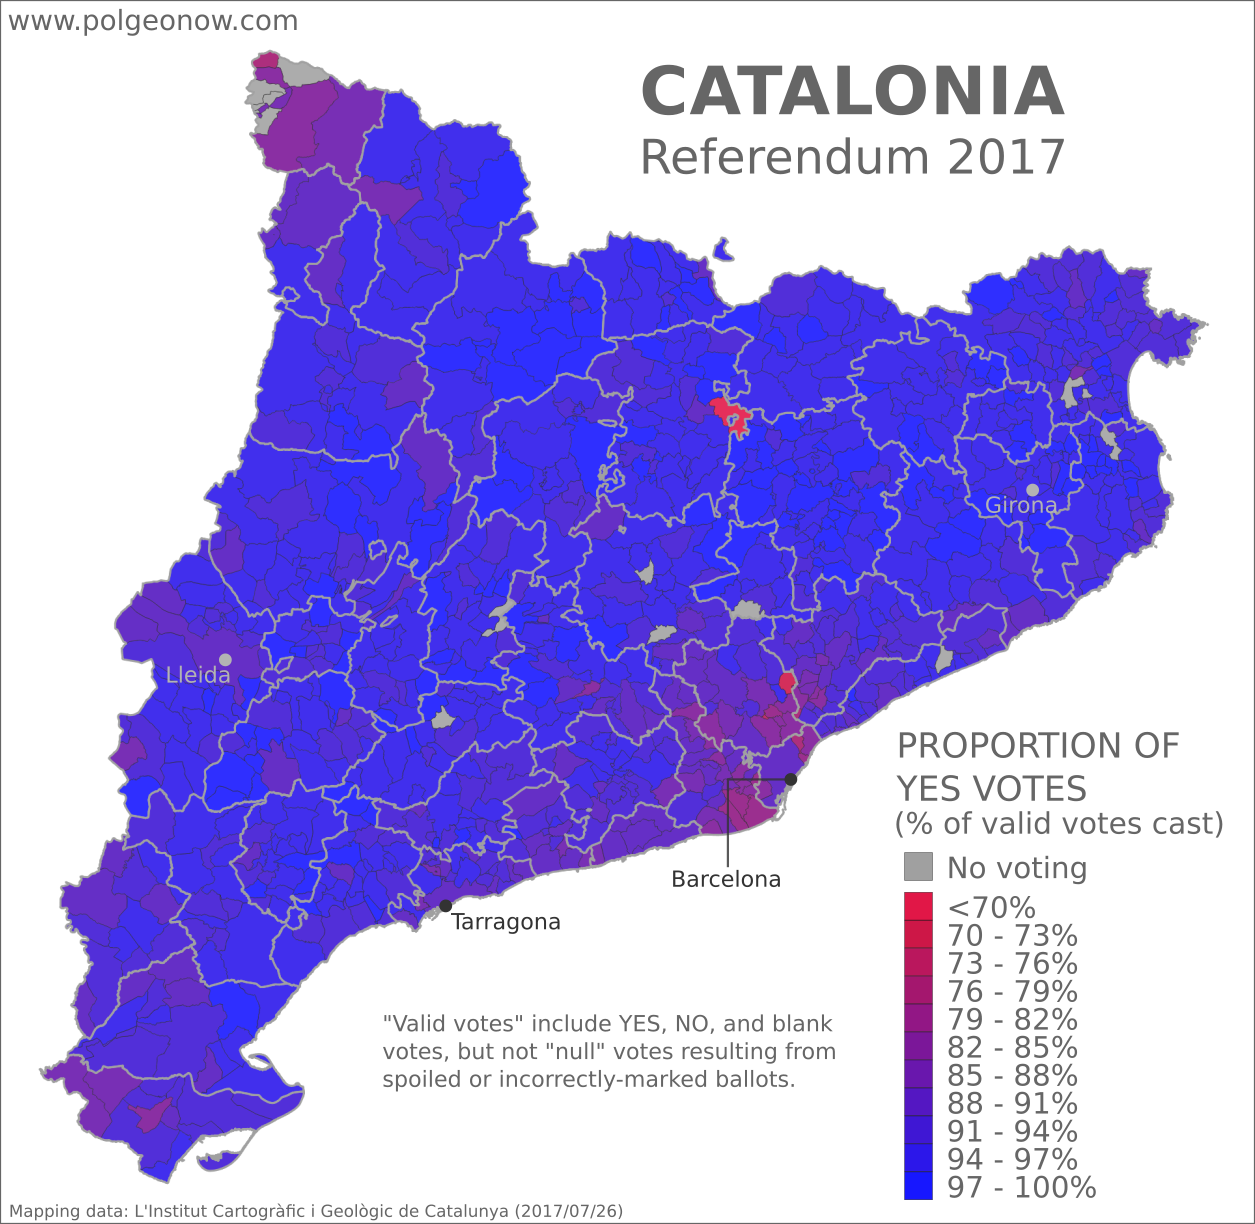 Catalan referendum 2017 map: Detailed, municipality-level map of results in Catalonia's disputed October 2017 referendum on independence from Spain, showing proportion of YES votes in favor of independence in each municipality. Boundaries of comarques (comarcas) shown. Labels cities of Barcelona, Tarragona, Lleida, and Girona. Colorblind accessible.